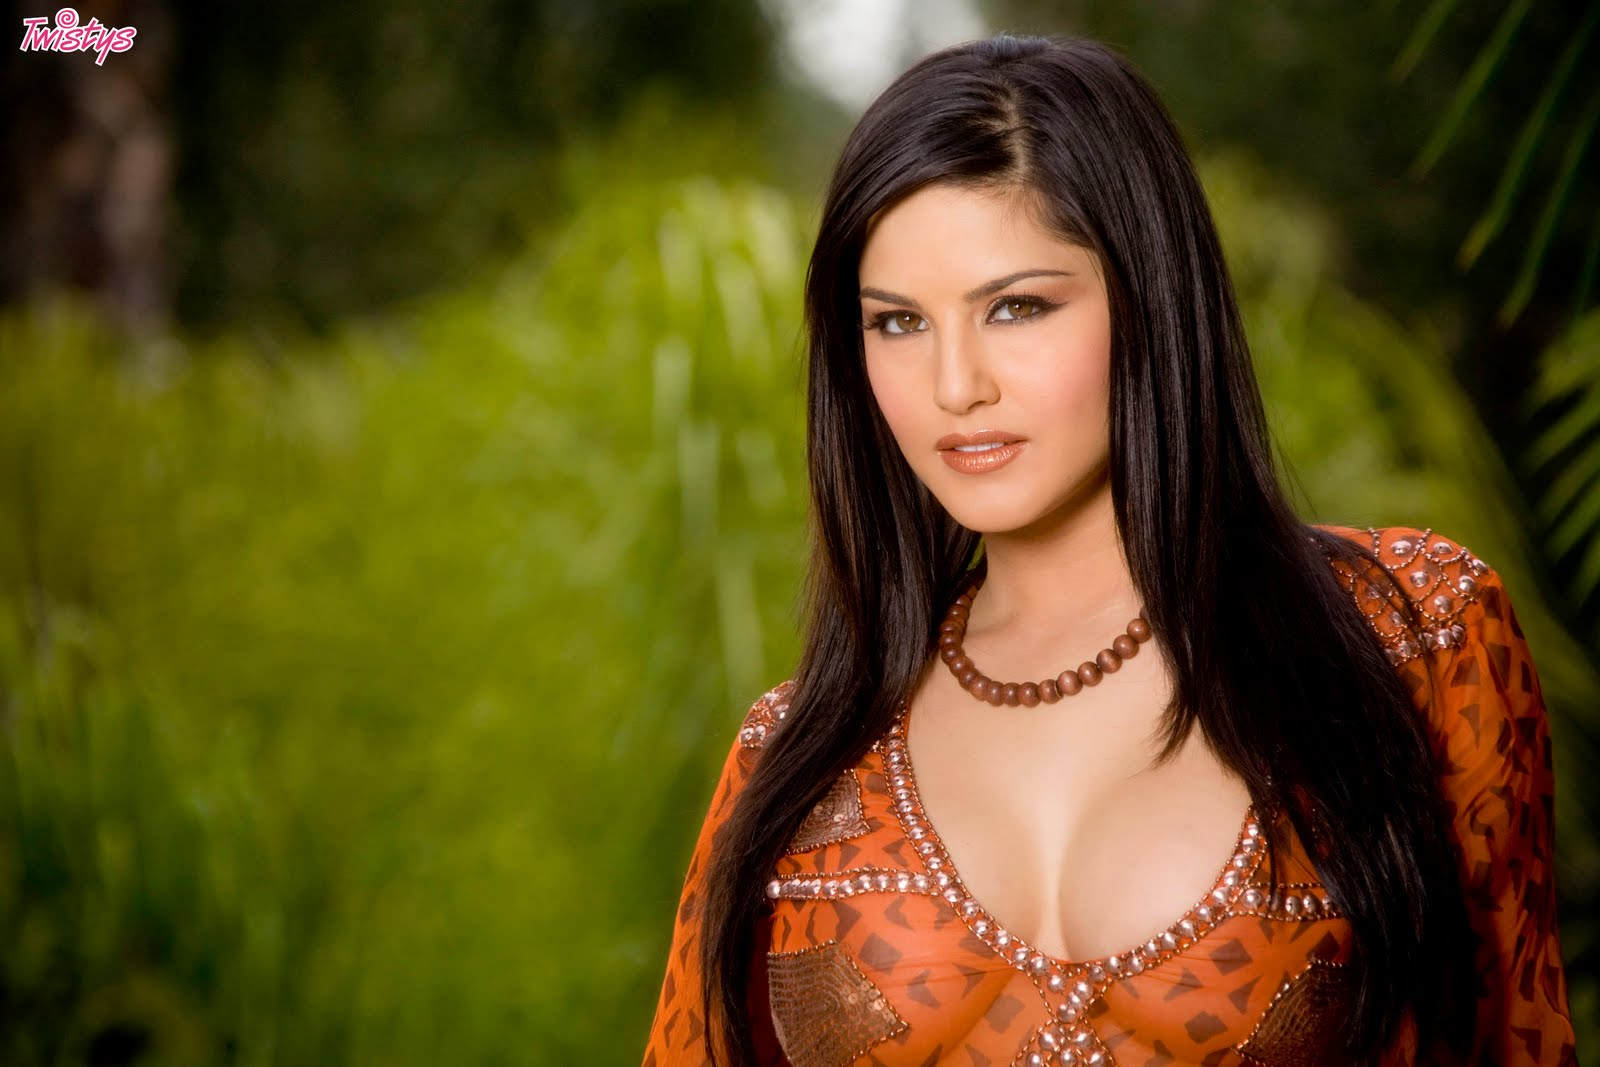 Hd picture of sunny leone